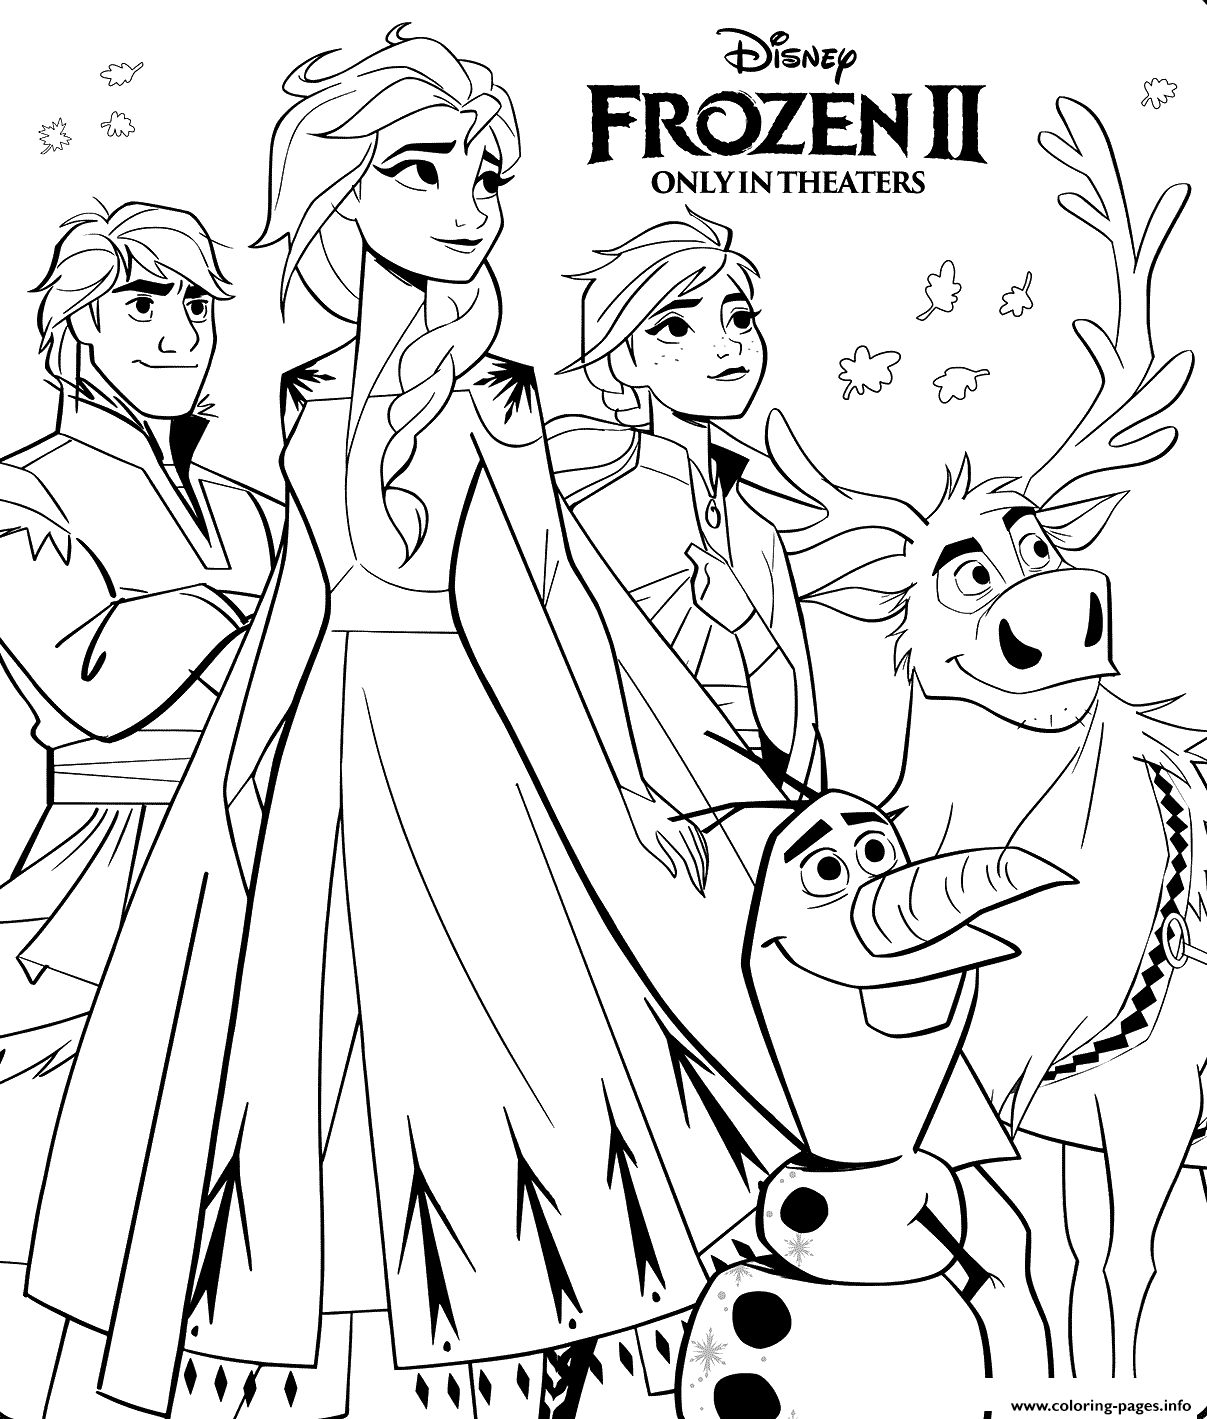 a coloring picture of frozen coloring book elsa frozen 2 coloring pages colouring mermaid of picture a coloring frozen